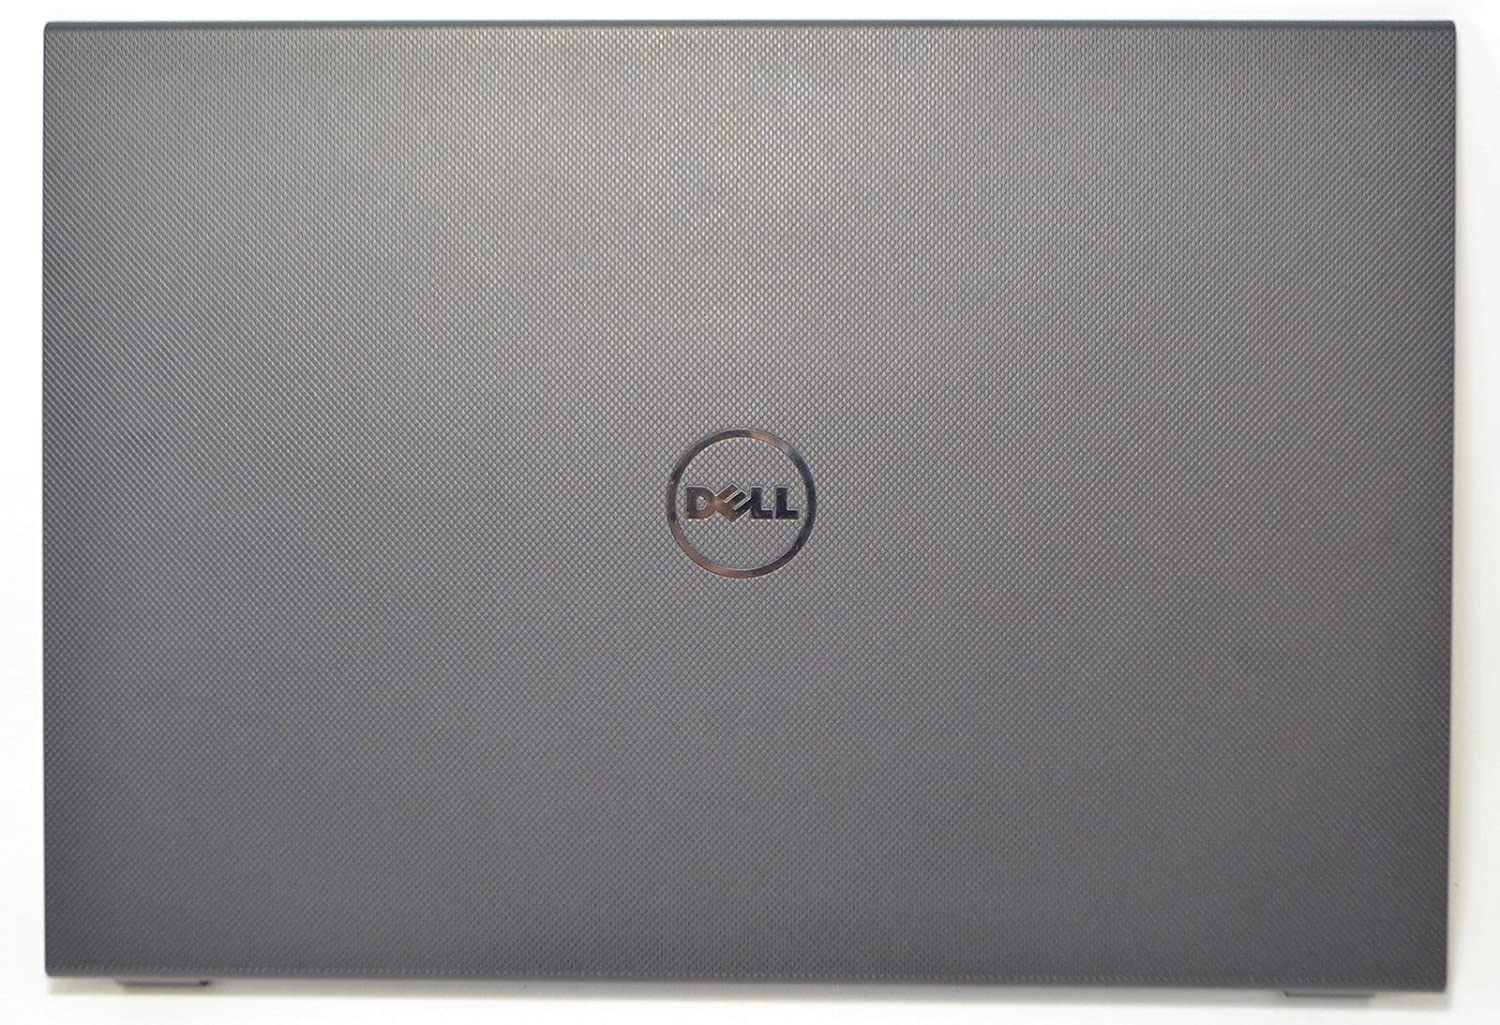 Genuine OEM Dell 0TK8C New Inspiron 15 3541 3542 Laptop Notebook Display Visual Monitor 15.6 Inch Rear Back Black Cover Top Panel Case Antenna Shielded Wire Component Support LCD LID 46M.00HCS.0001